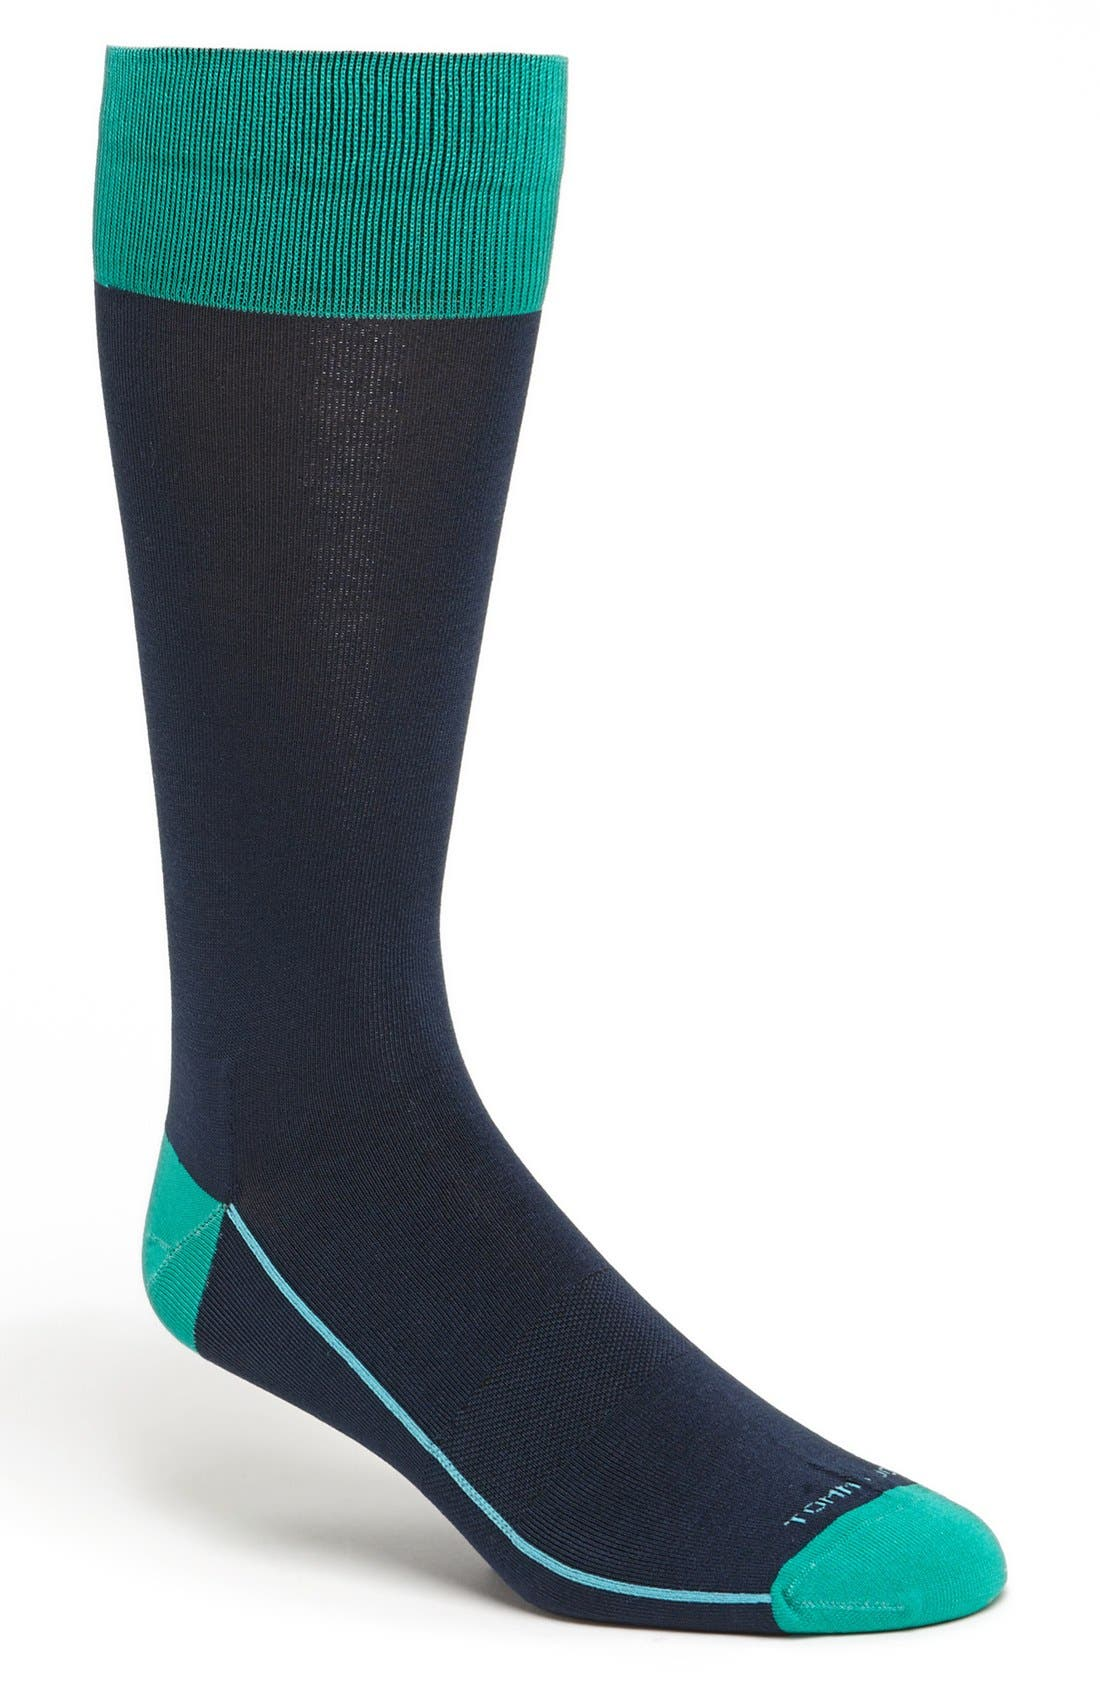 Alternate Image 1 Selected - Tommy John Solid Cotton Blend Socks